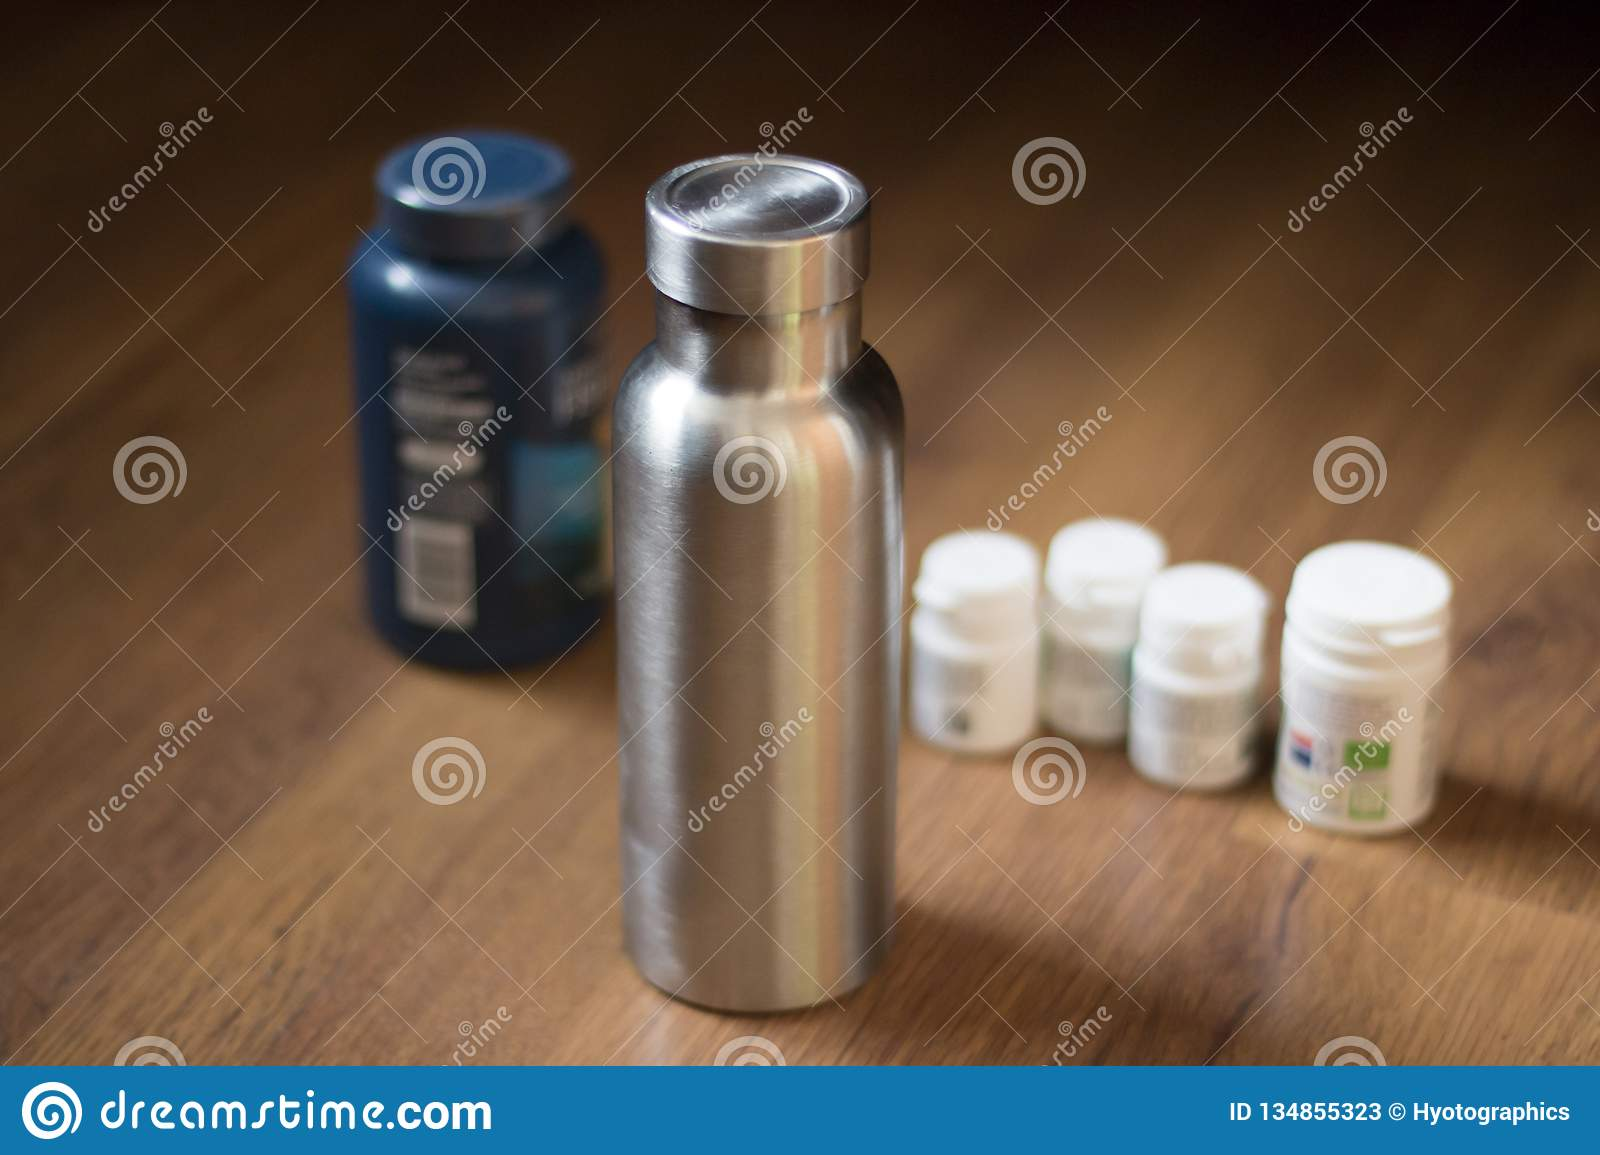 Insulated Stainless Bottle next to pill bottles